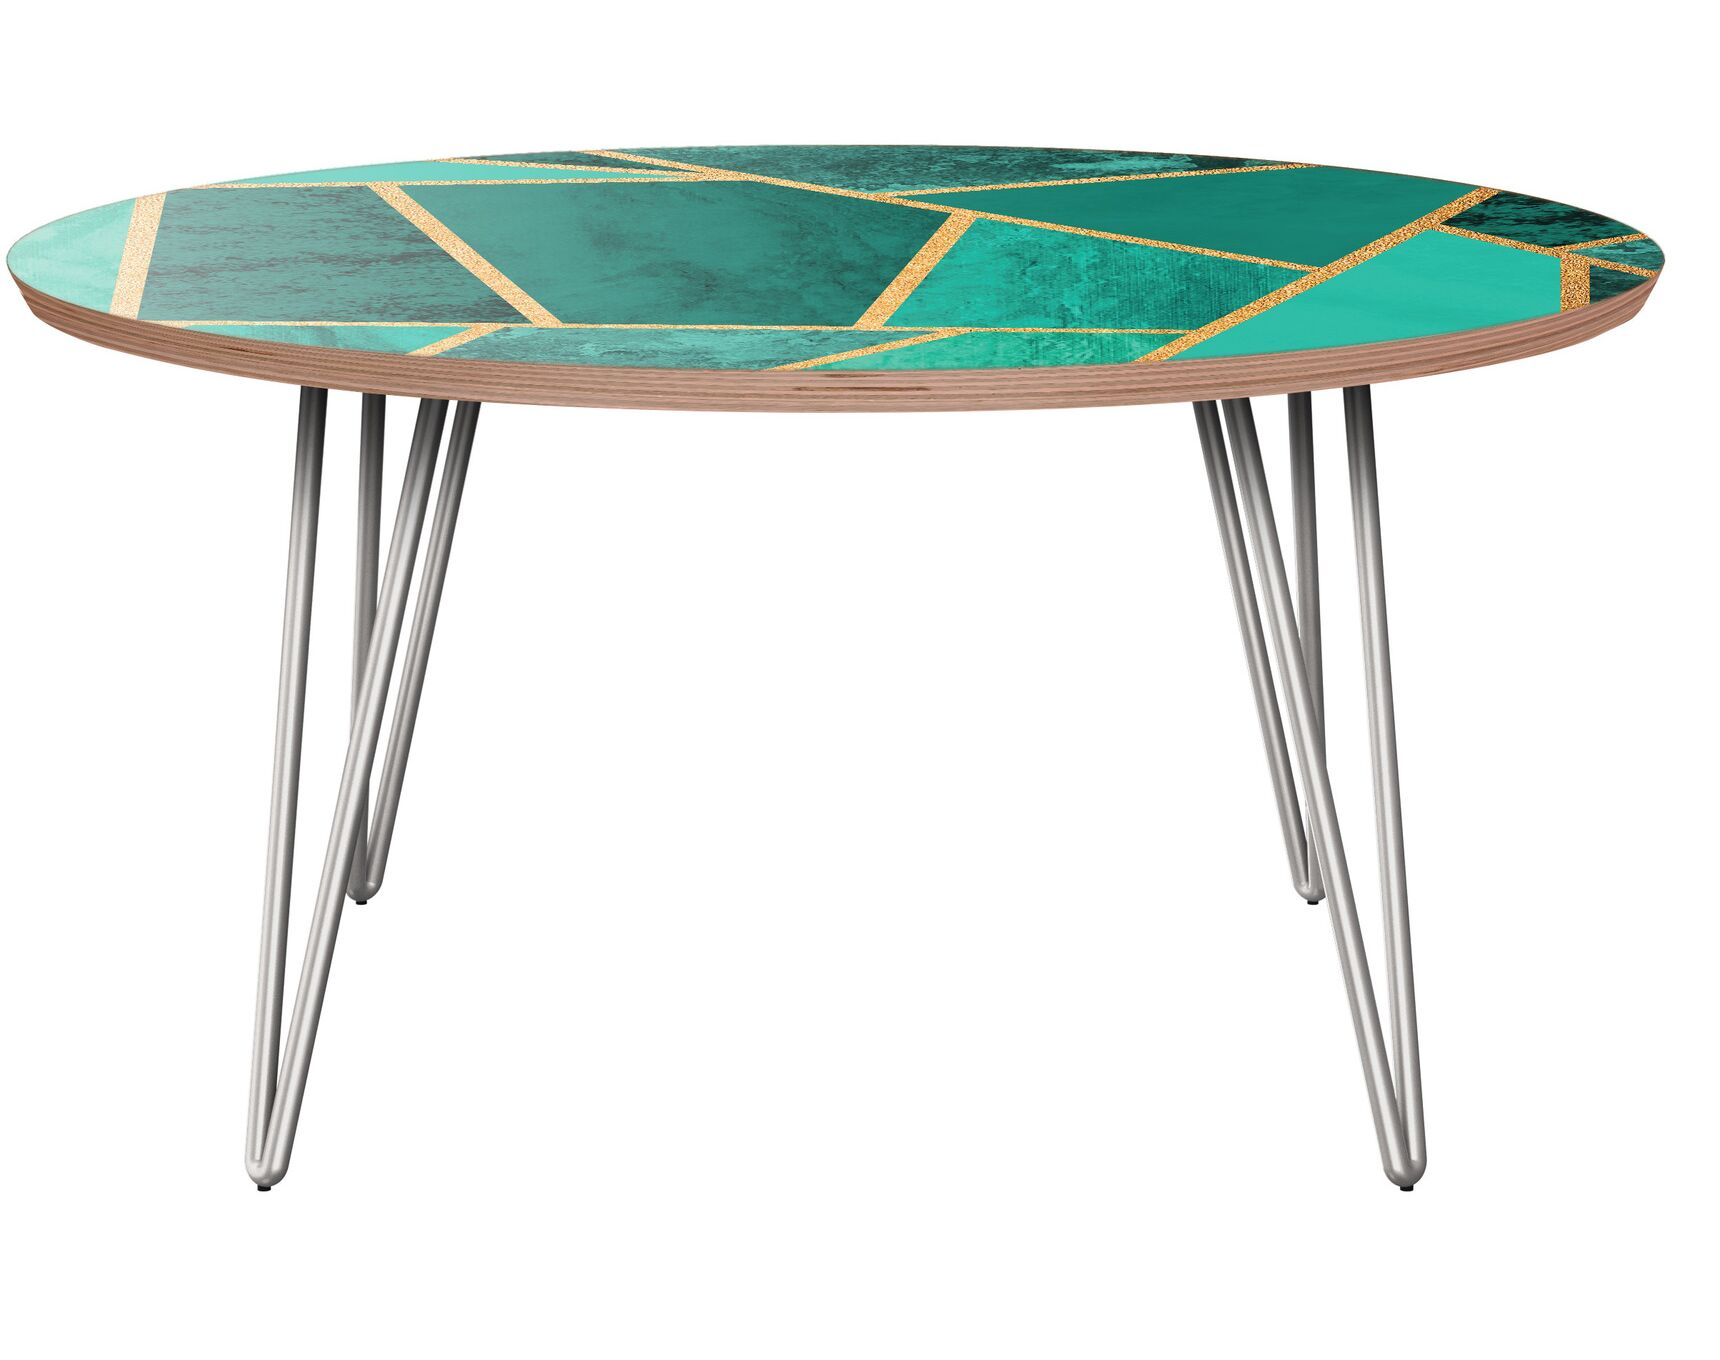 Mcglothin Coffee Table Table Base Color: Chrome, Table Top Color: Walnut/Green